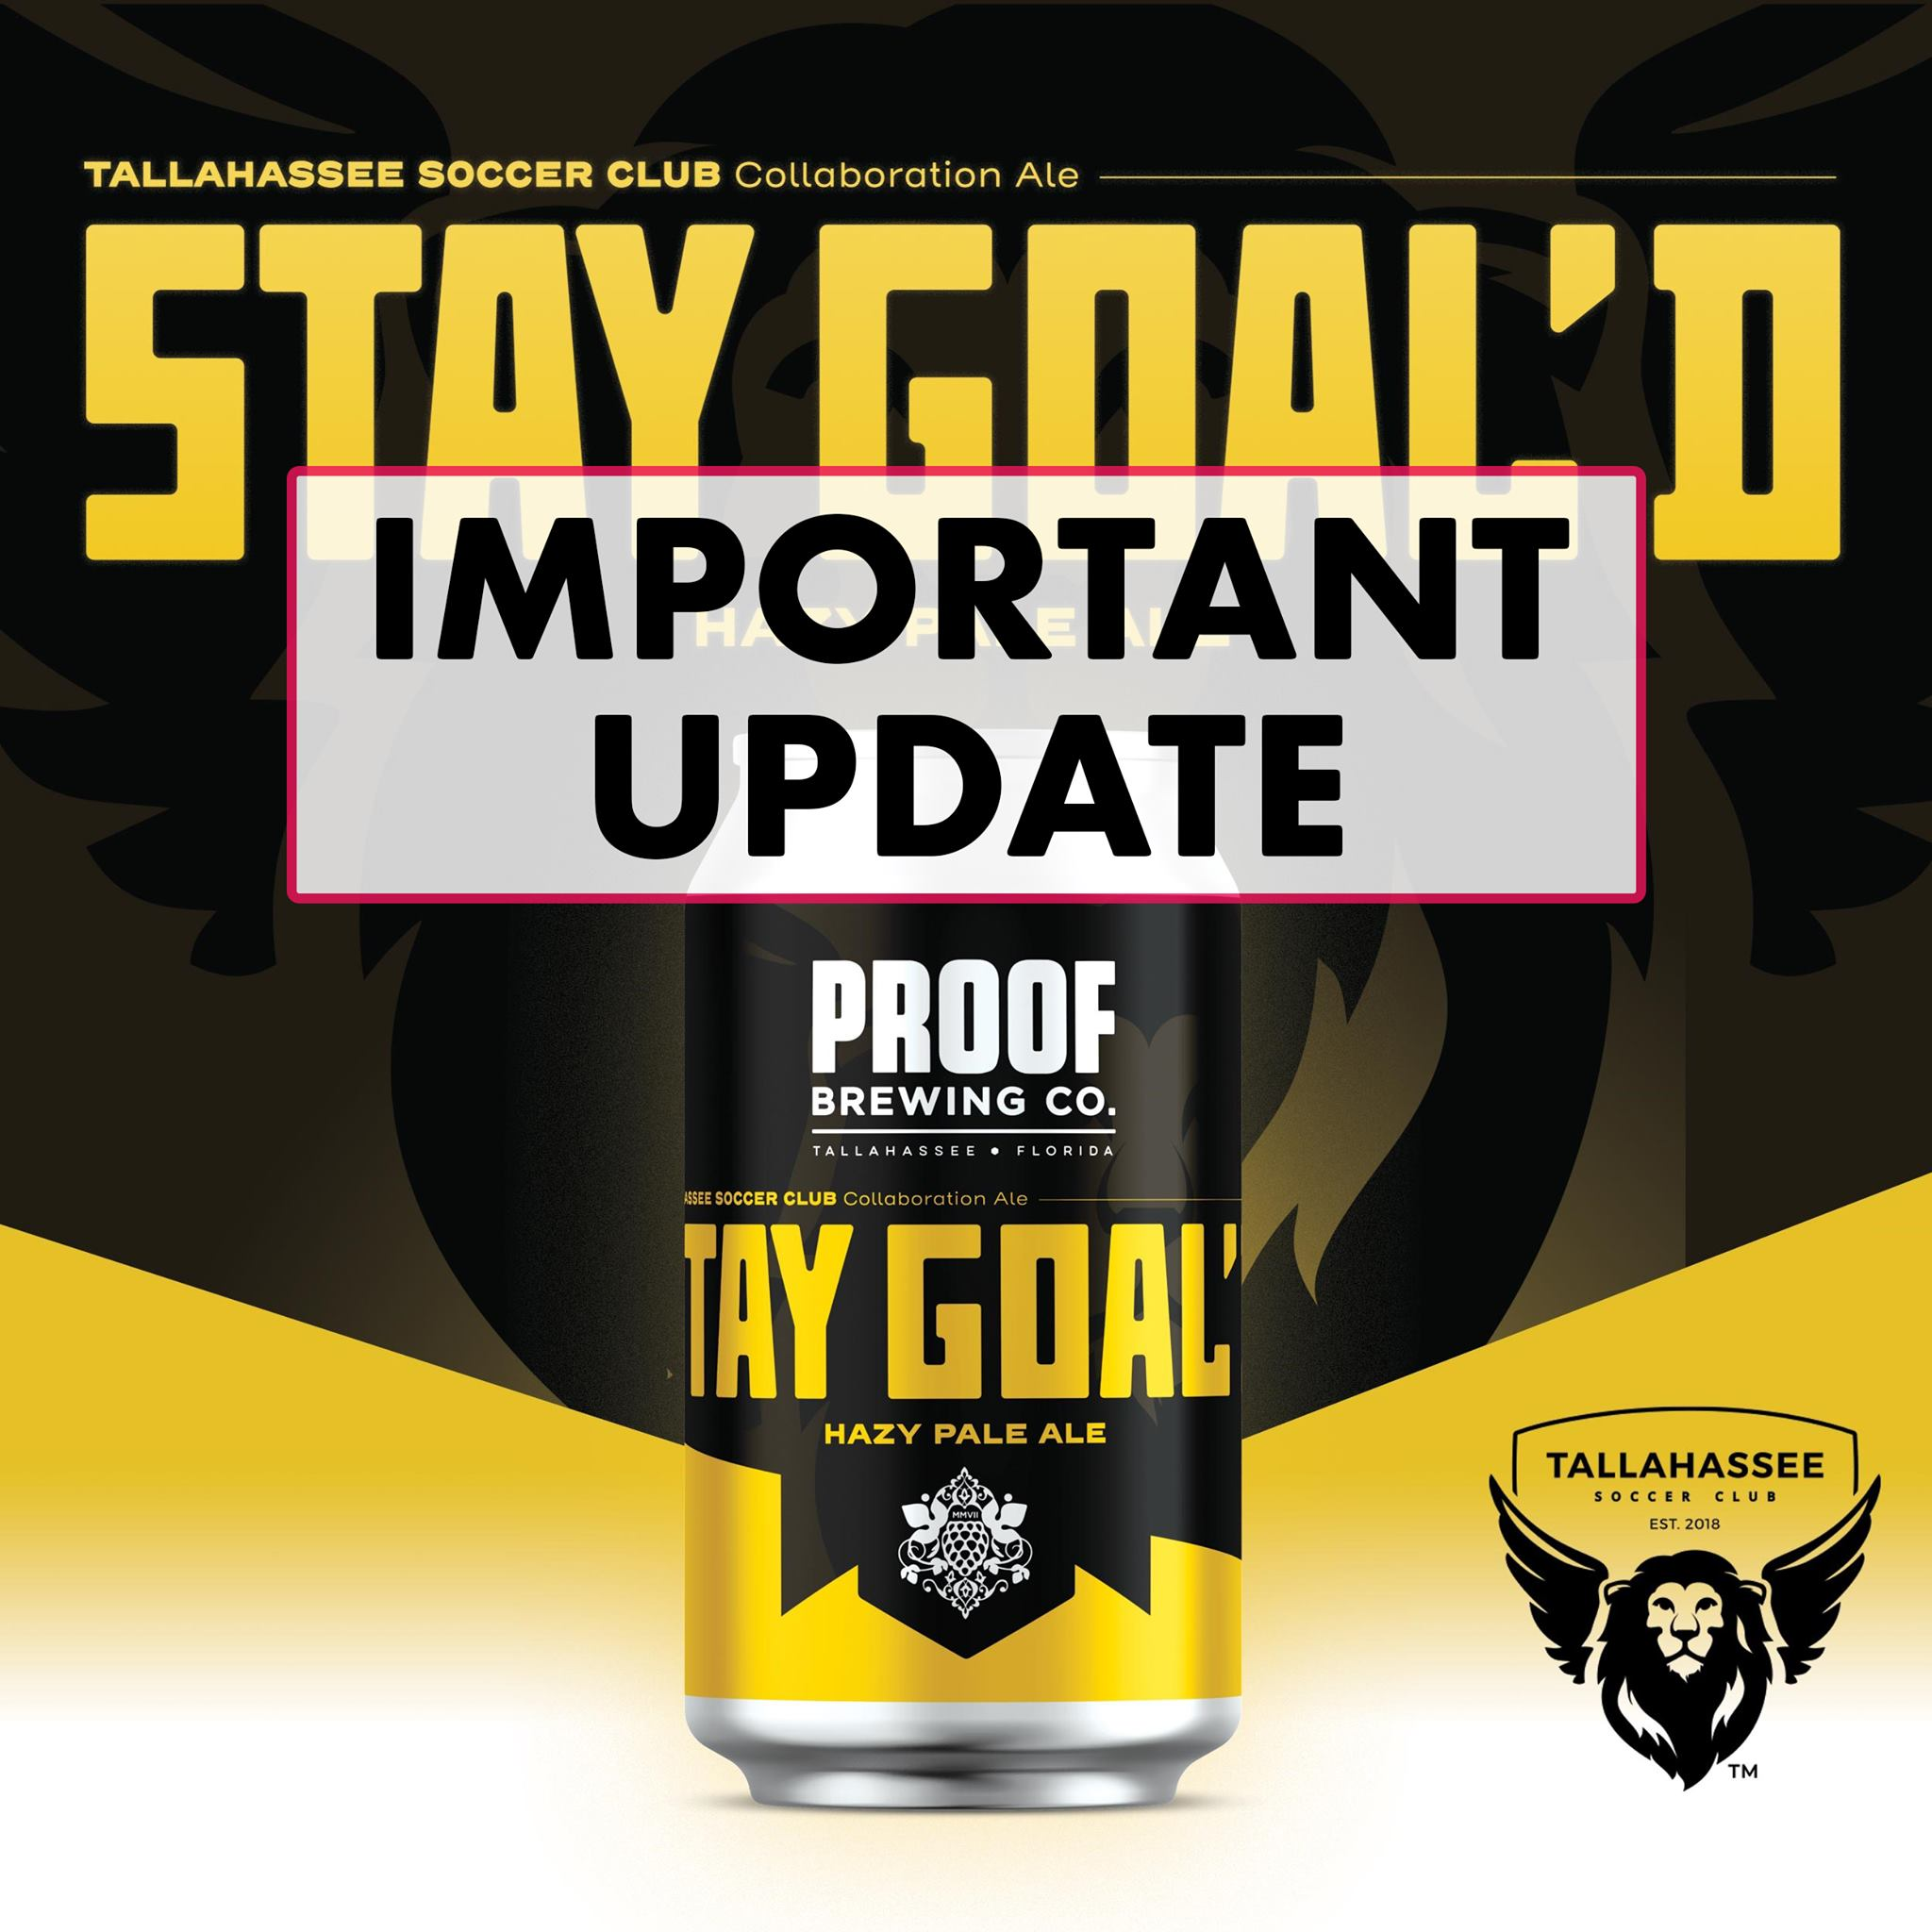 Proof Brewing Stay Goald